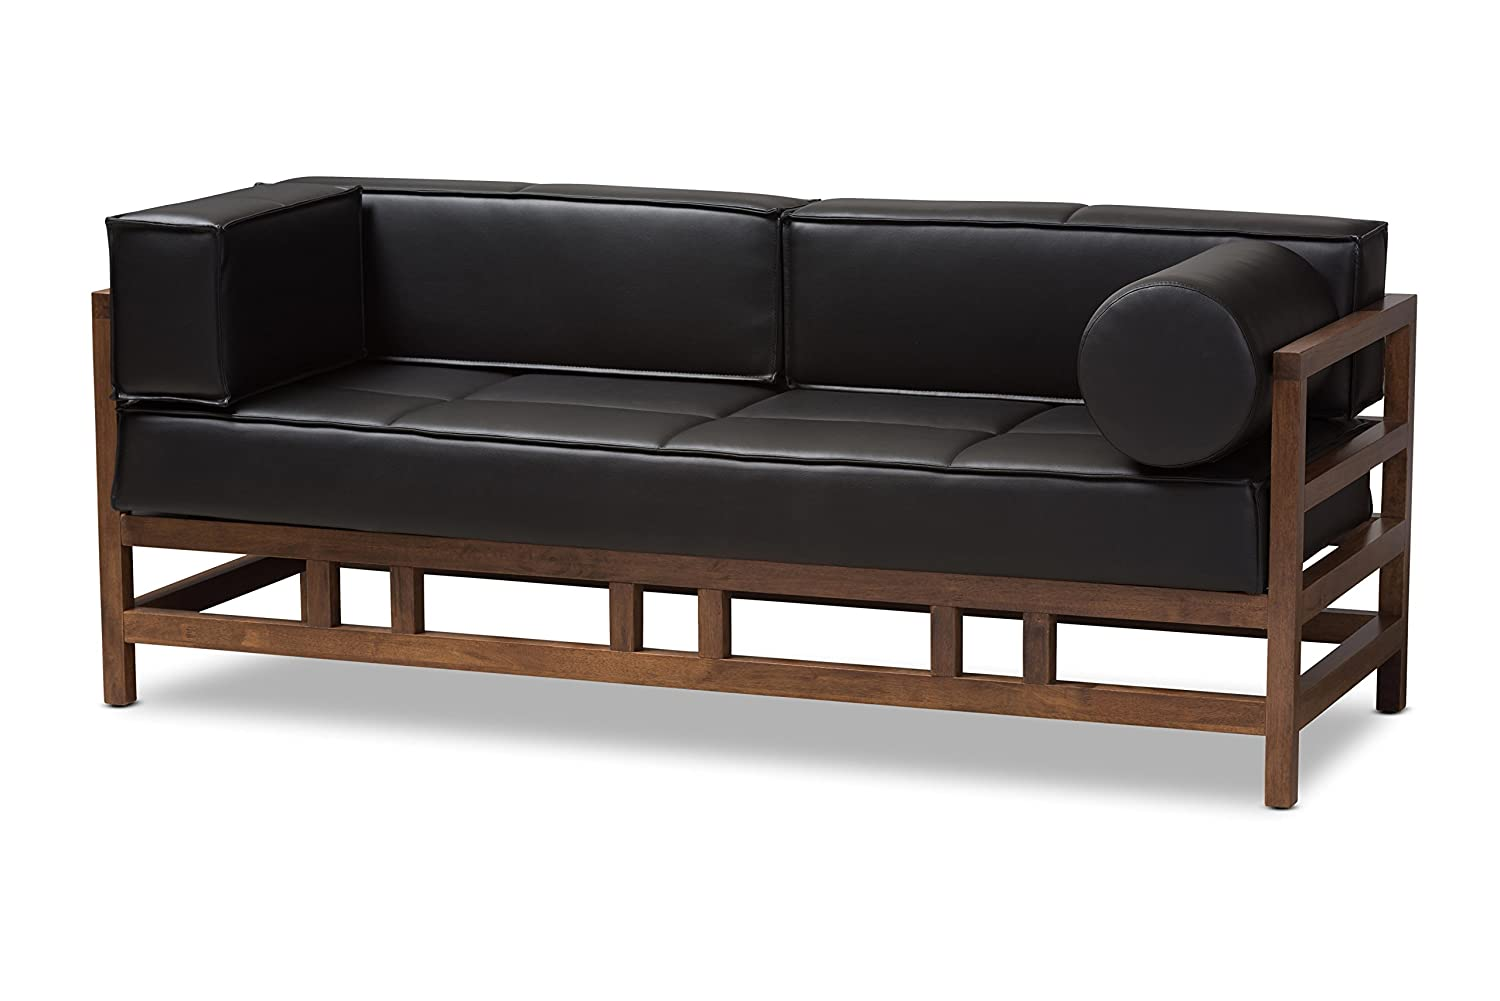 Baxton Studio Gavina Mid-Century Modern Pine Black Faux Leather Walnut Wood  2-Seater Sofa